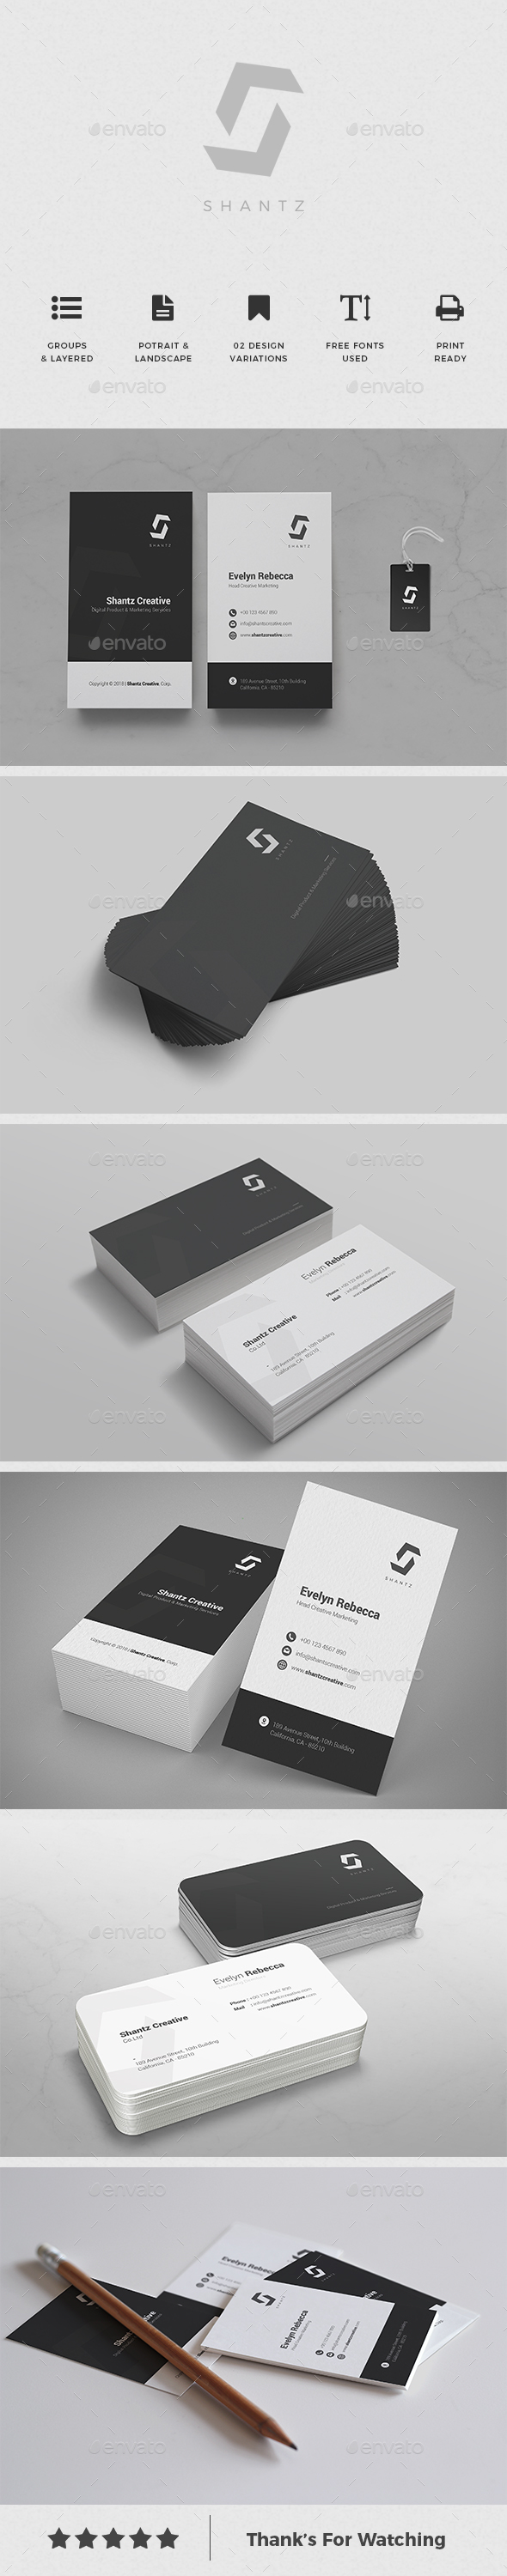 Minimalist Business Card Vol. 08 - Business Cards Print Templates